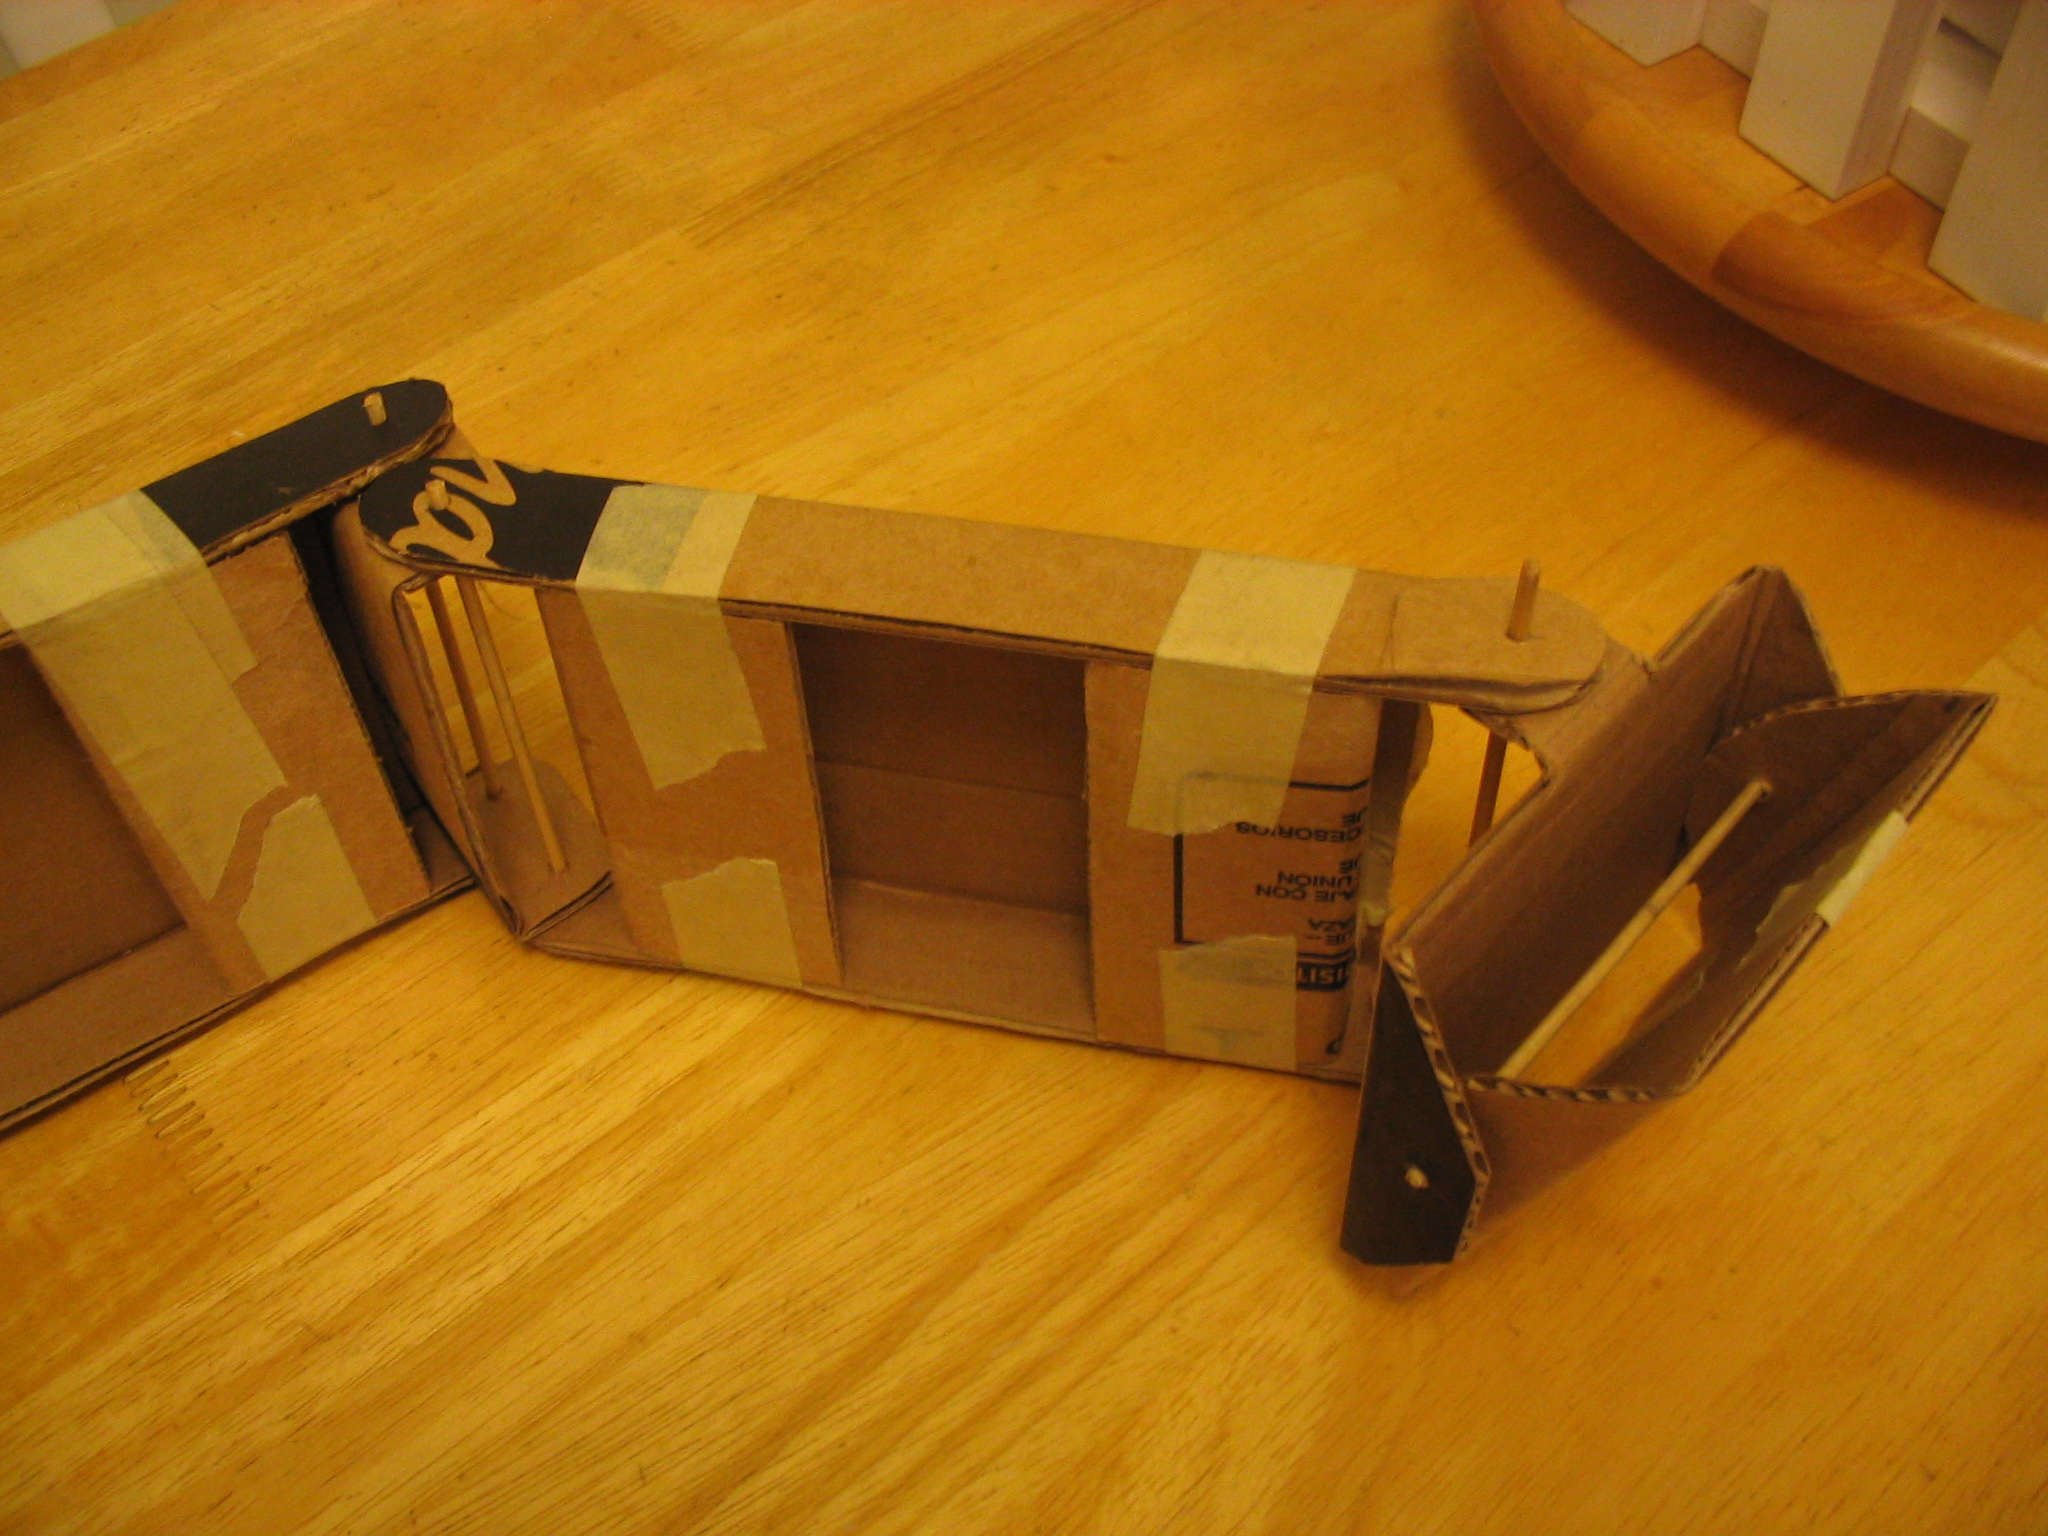 Second cardboard arm